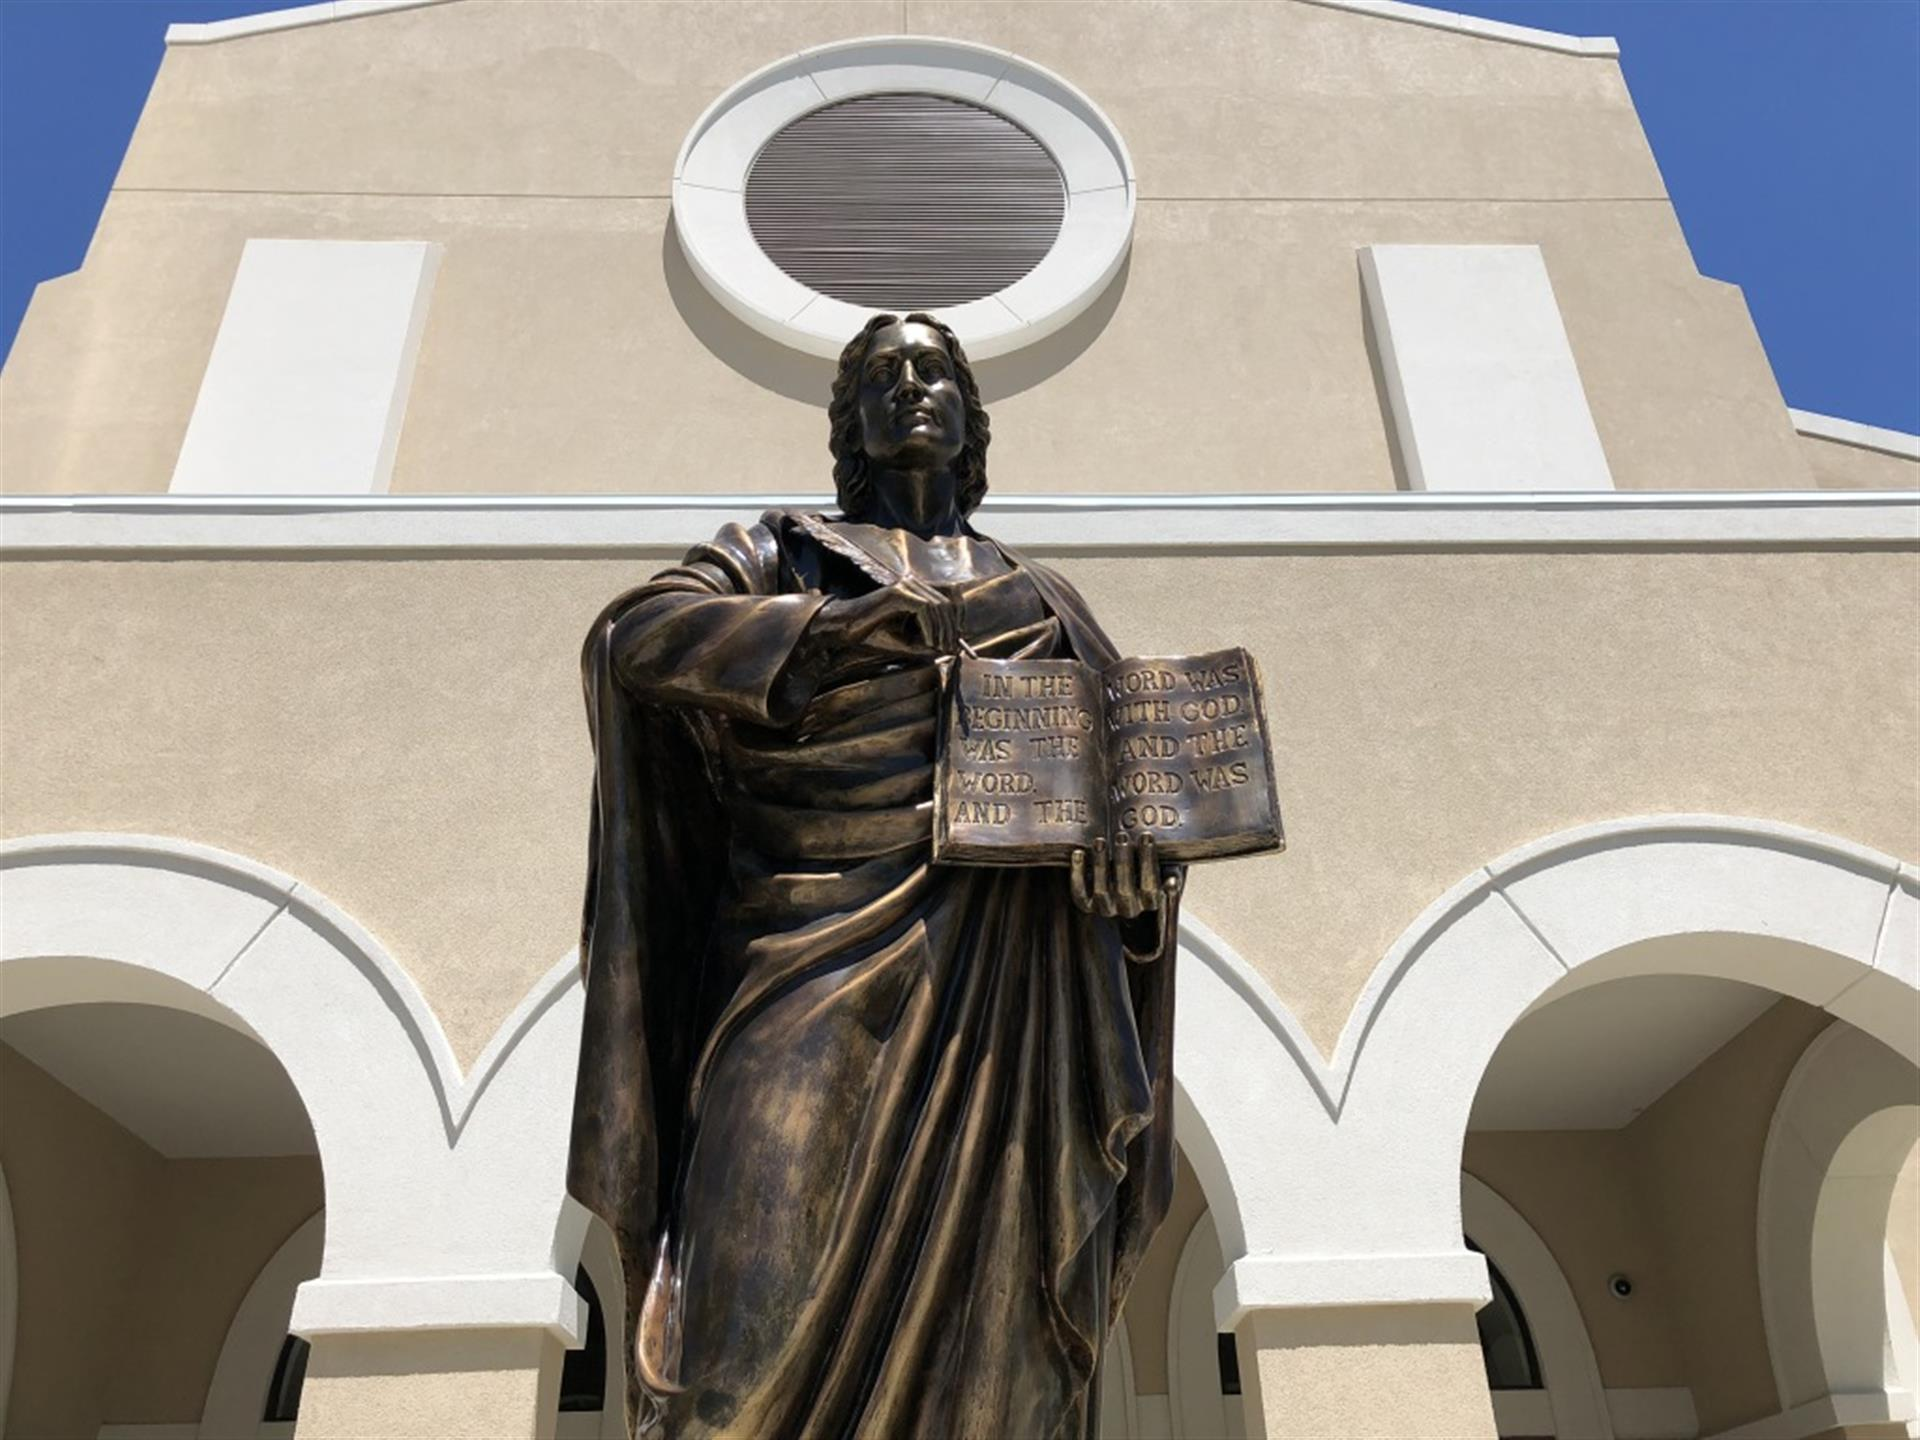 Statue outside the front of the church